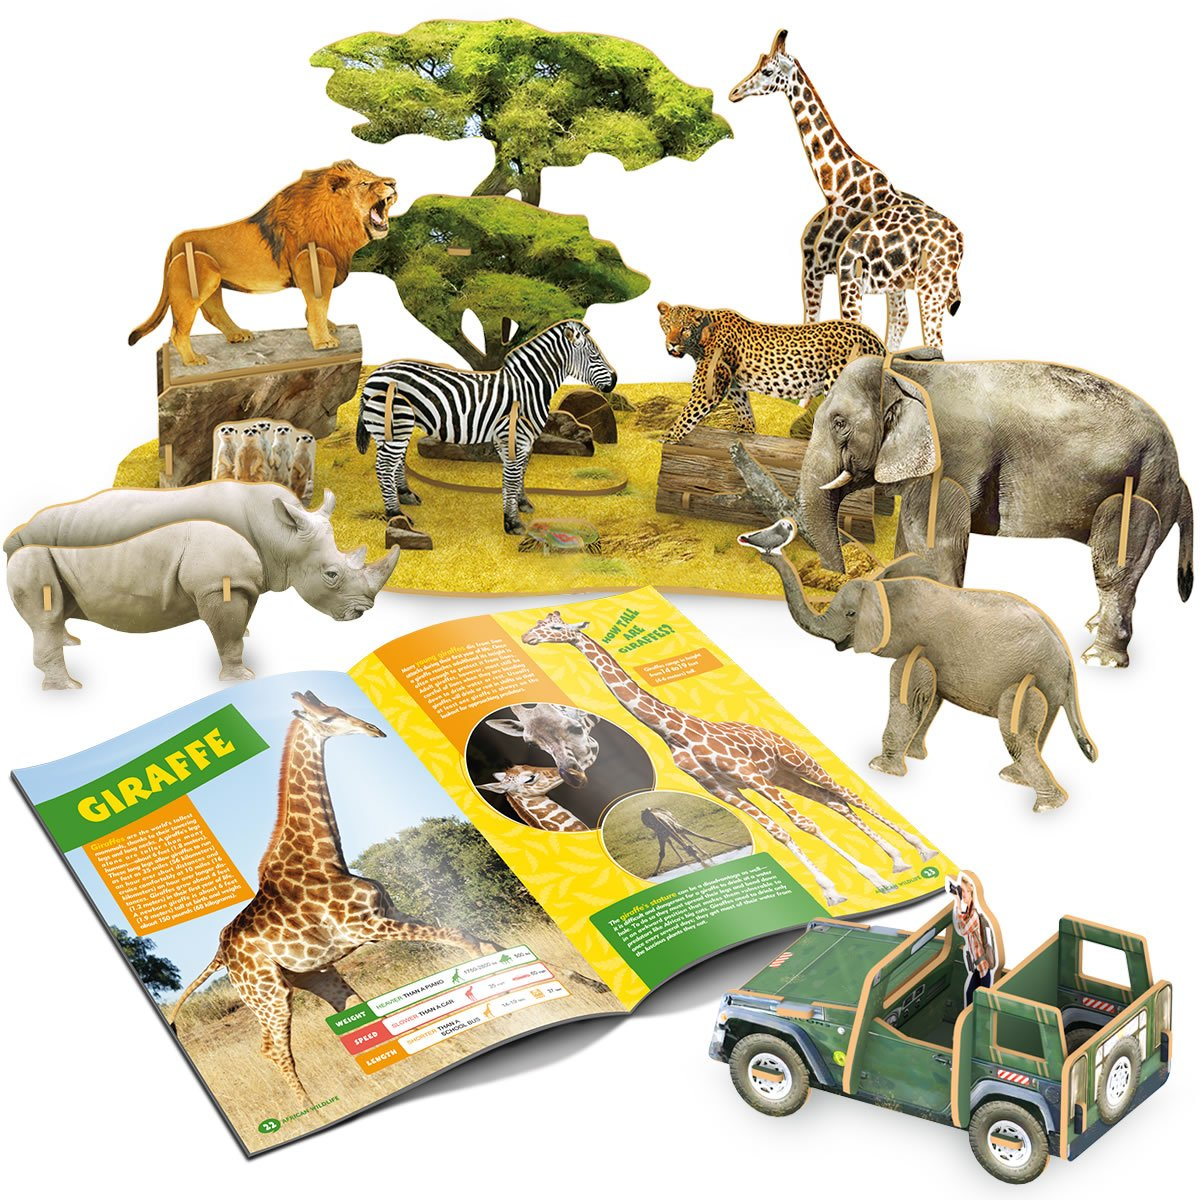 Cubicfun-National Geographic Dinosaur Puzzle Educational Toys with Bookelts, DS0973h